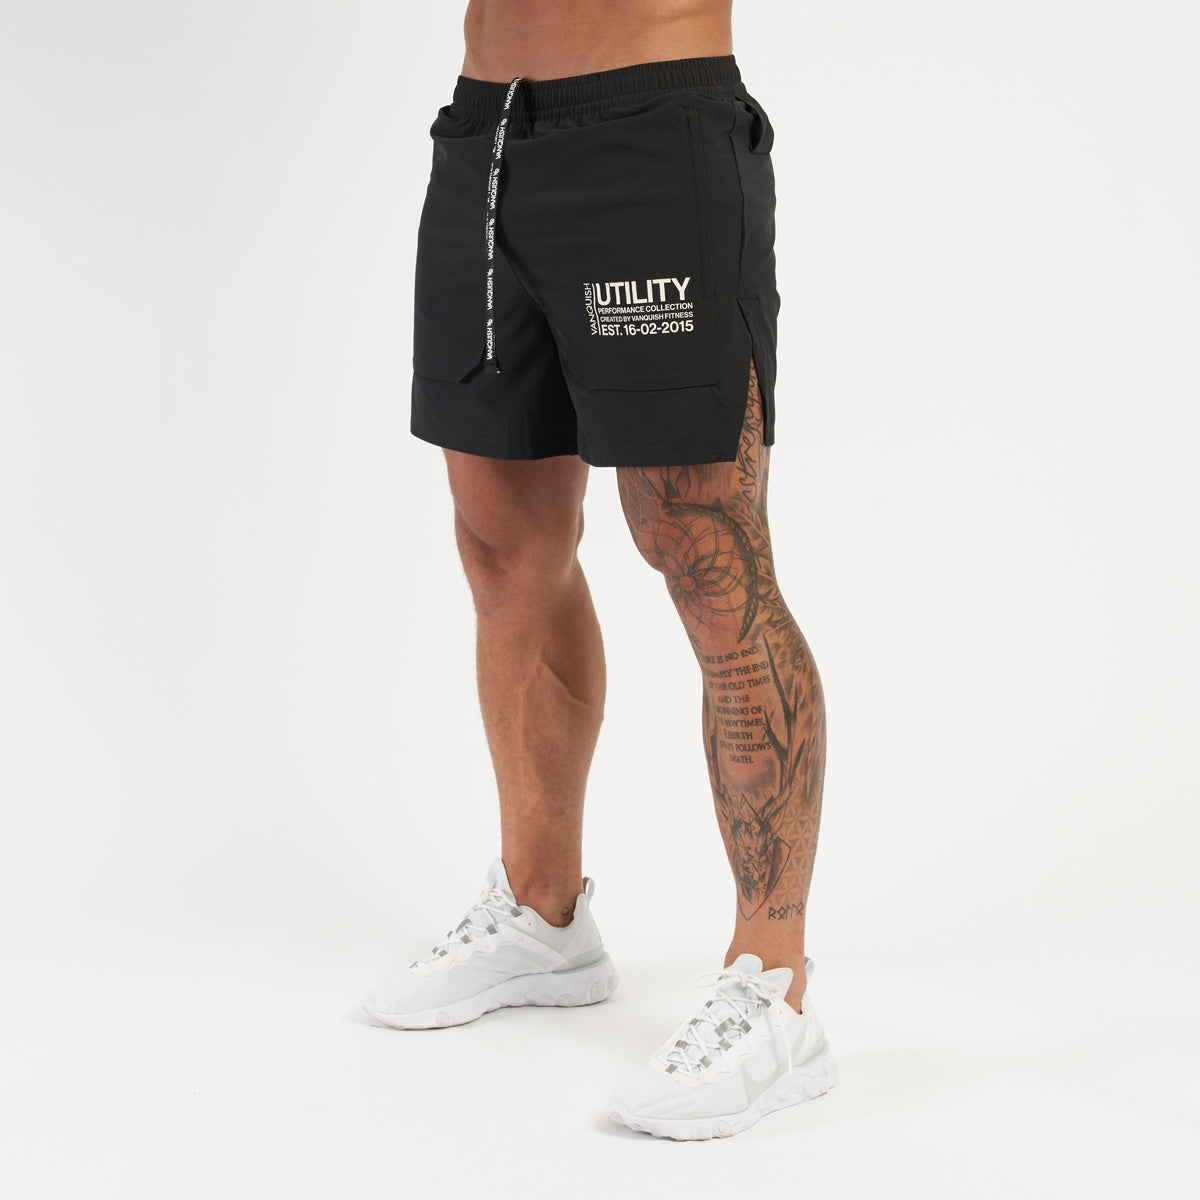 Vanquish Utility Men's Black 5 Inch Shorts